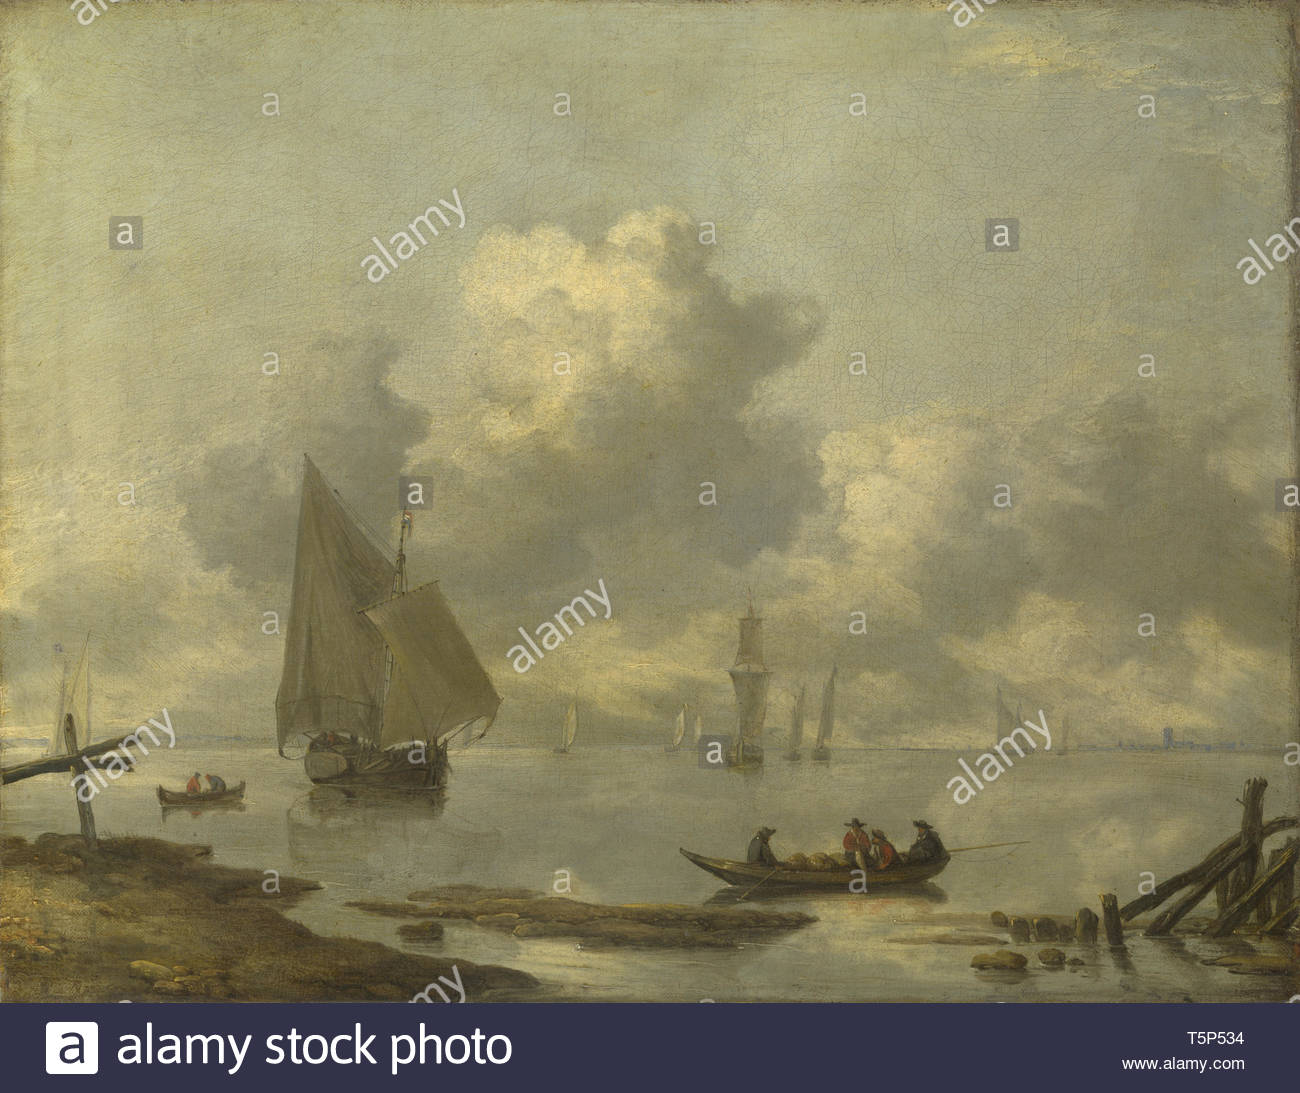 Jan van de Cappelle-Vessels in Light Airs on a River near a Town - Stock Image